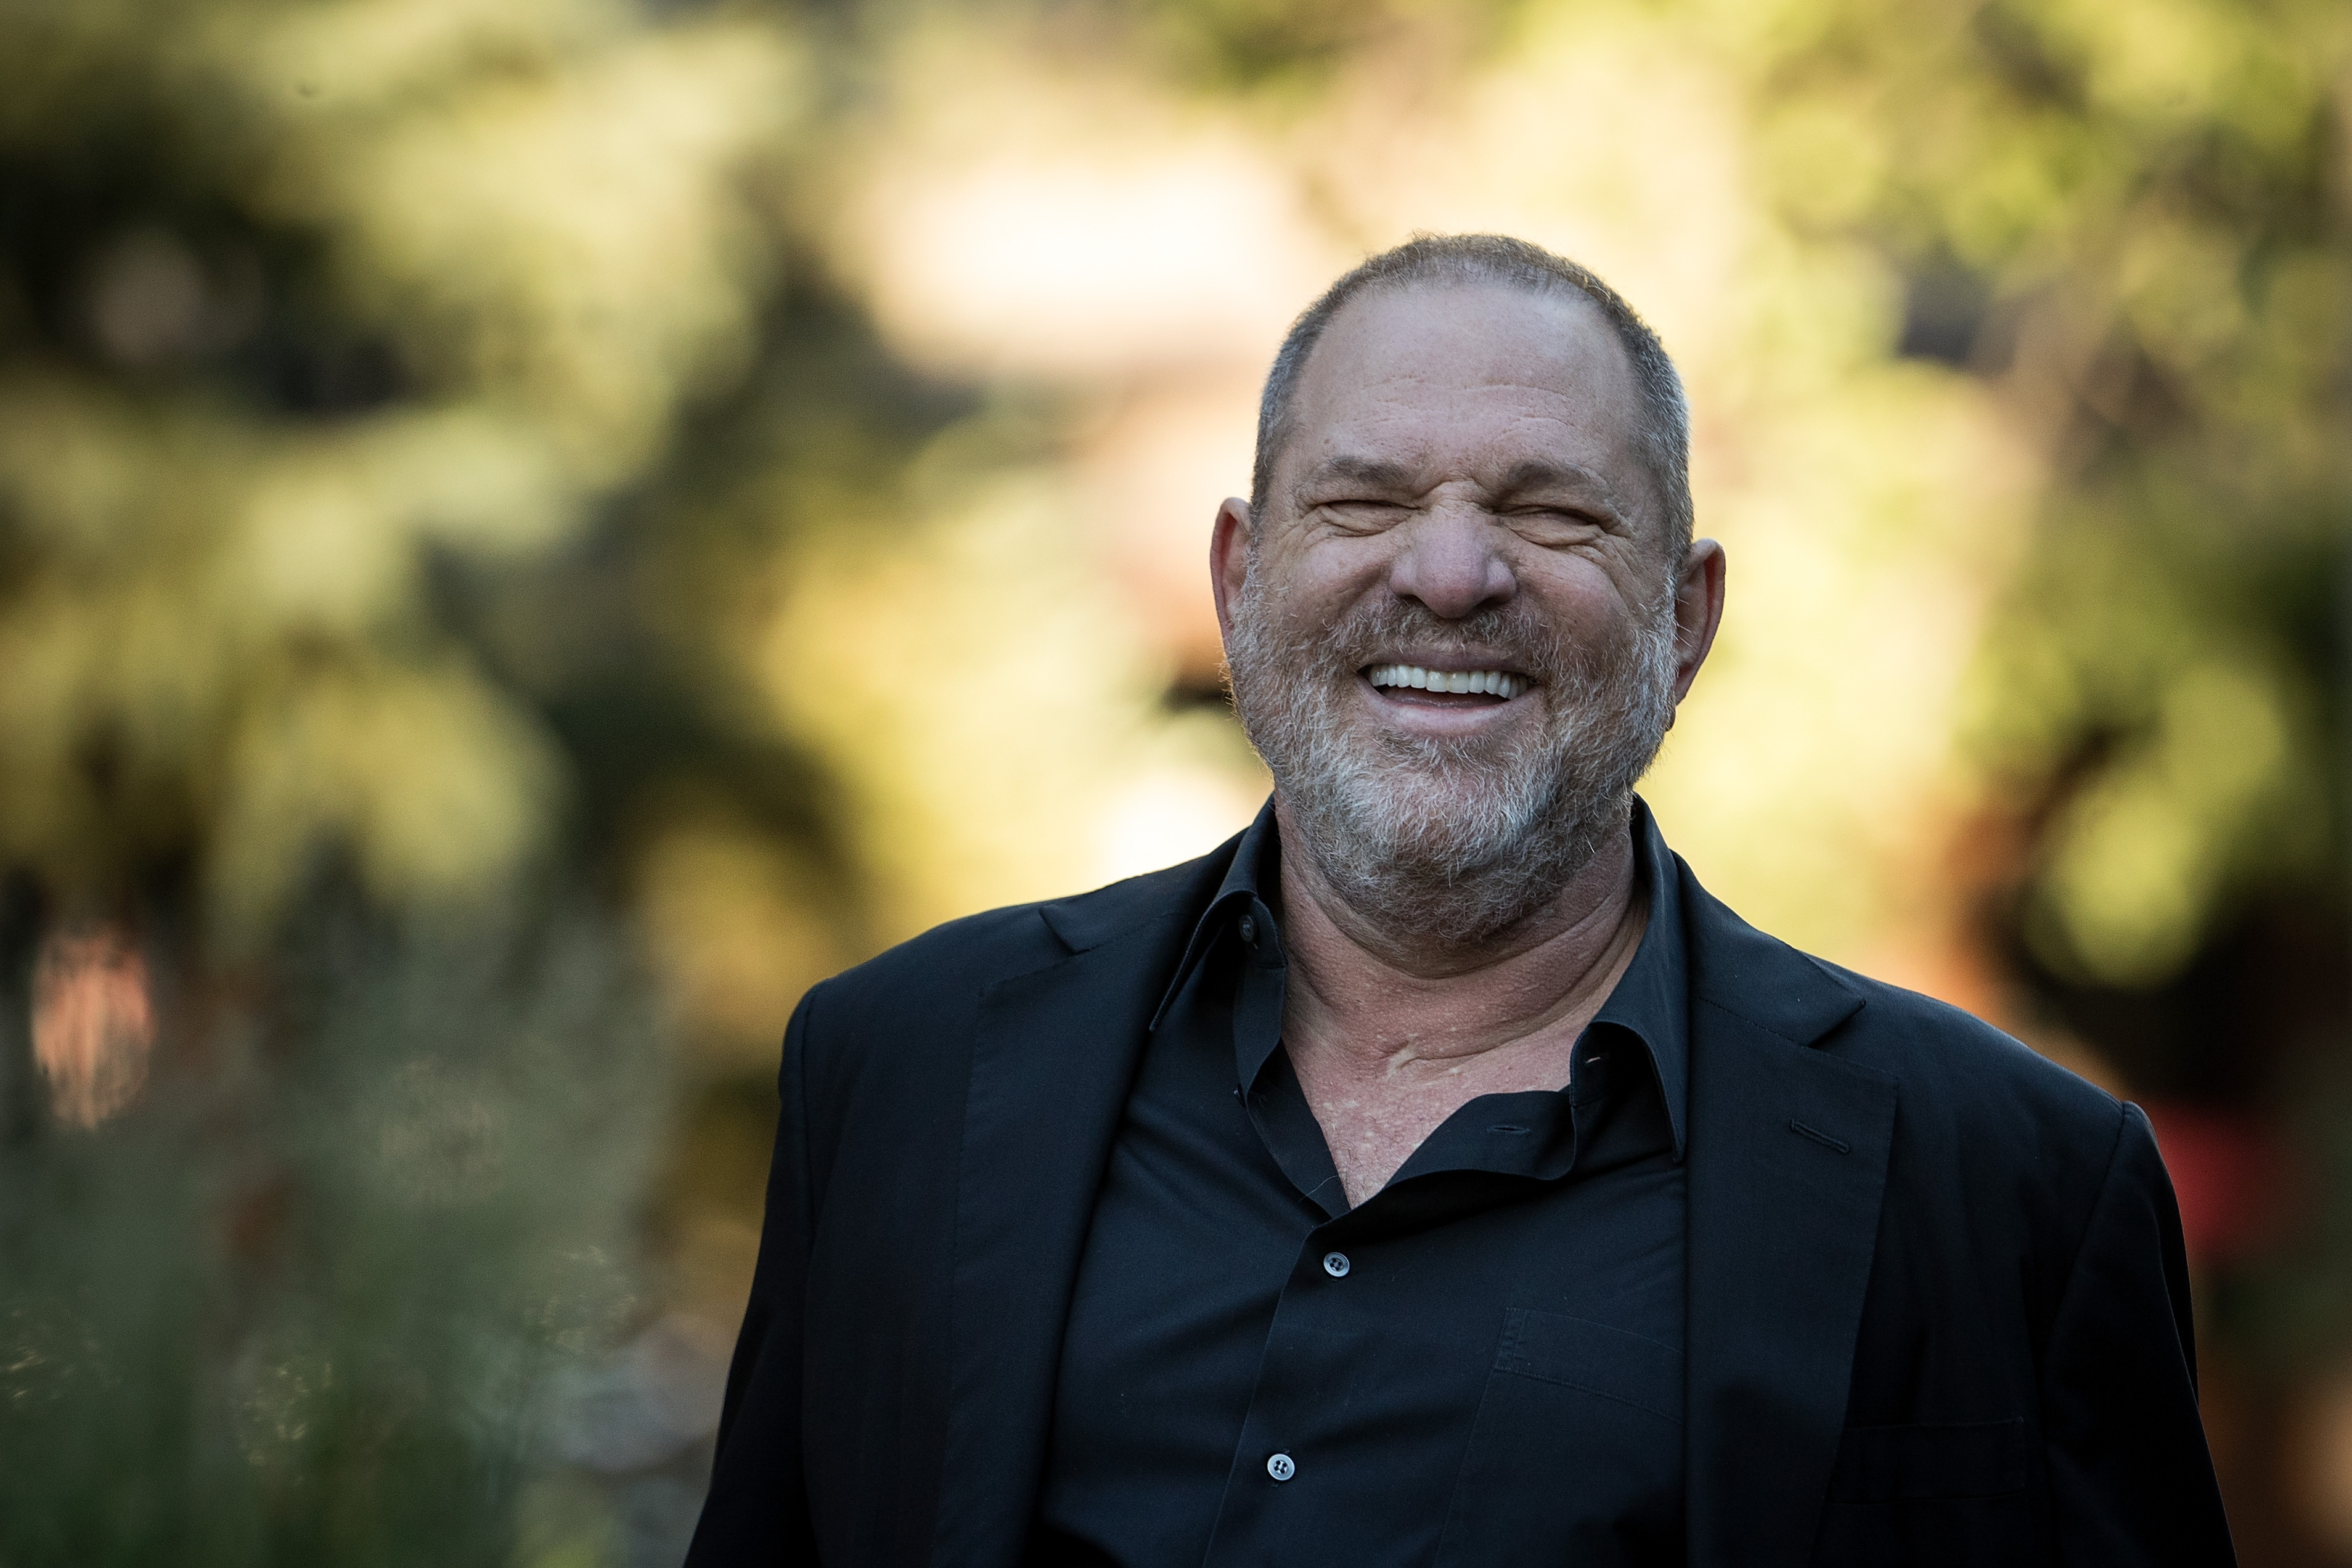 Harvey Weinstein attends the second day of the annual Allen & Company Sun Valley Conference, July 12, 2017 in Sun Valley, Idaho.